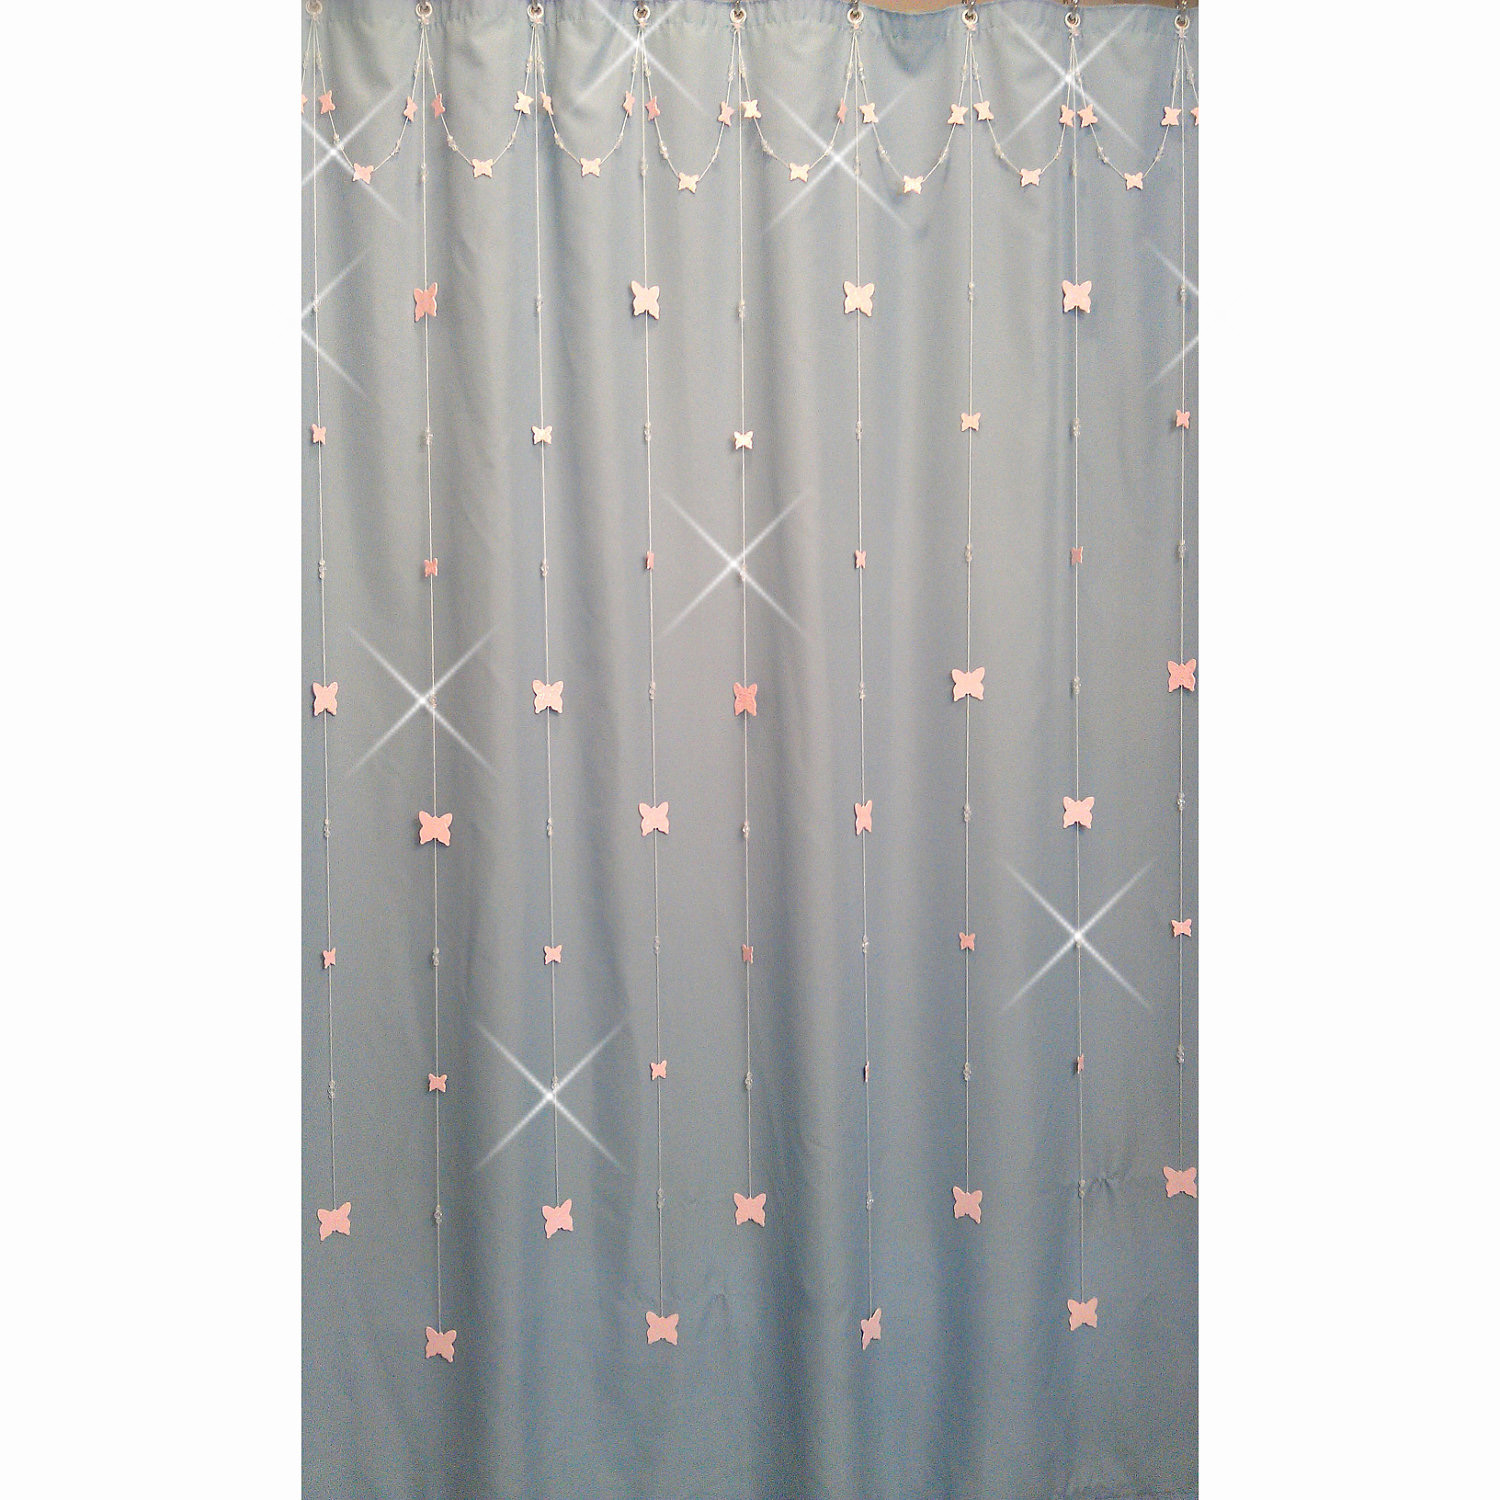 Brand-new Shadez of Michelle: Shower Curtain Bling Pink Butterfly XA13